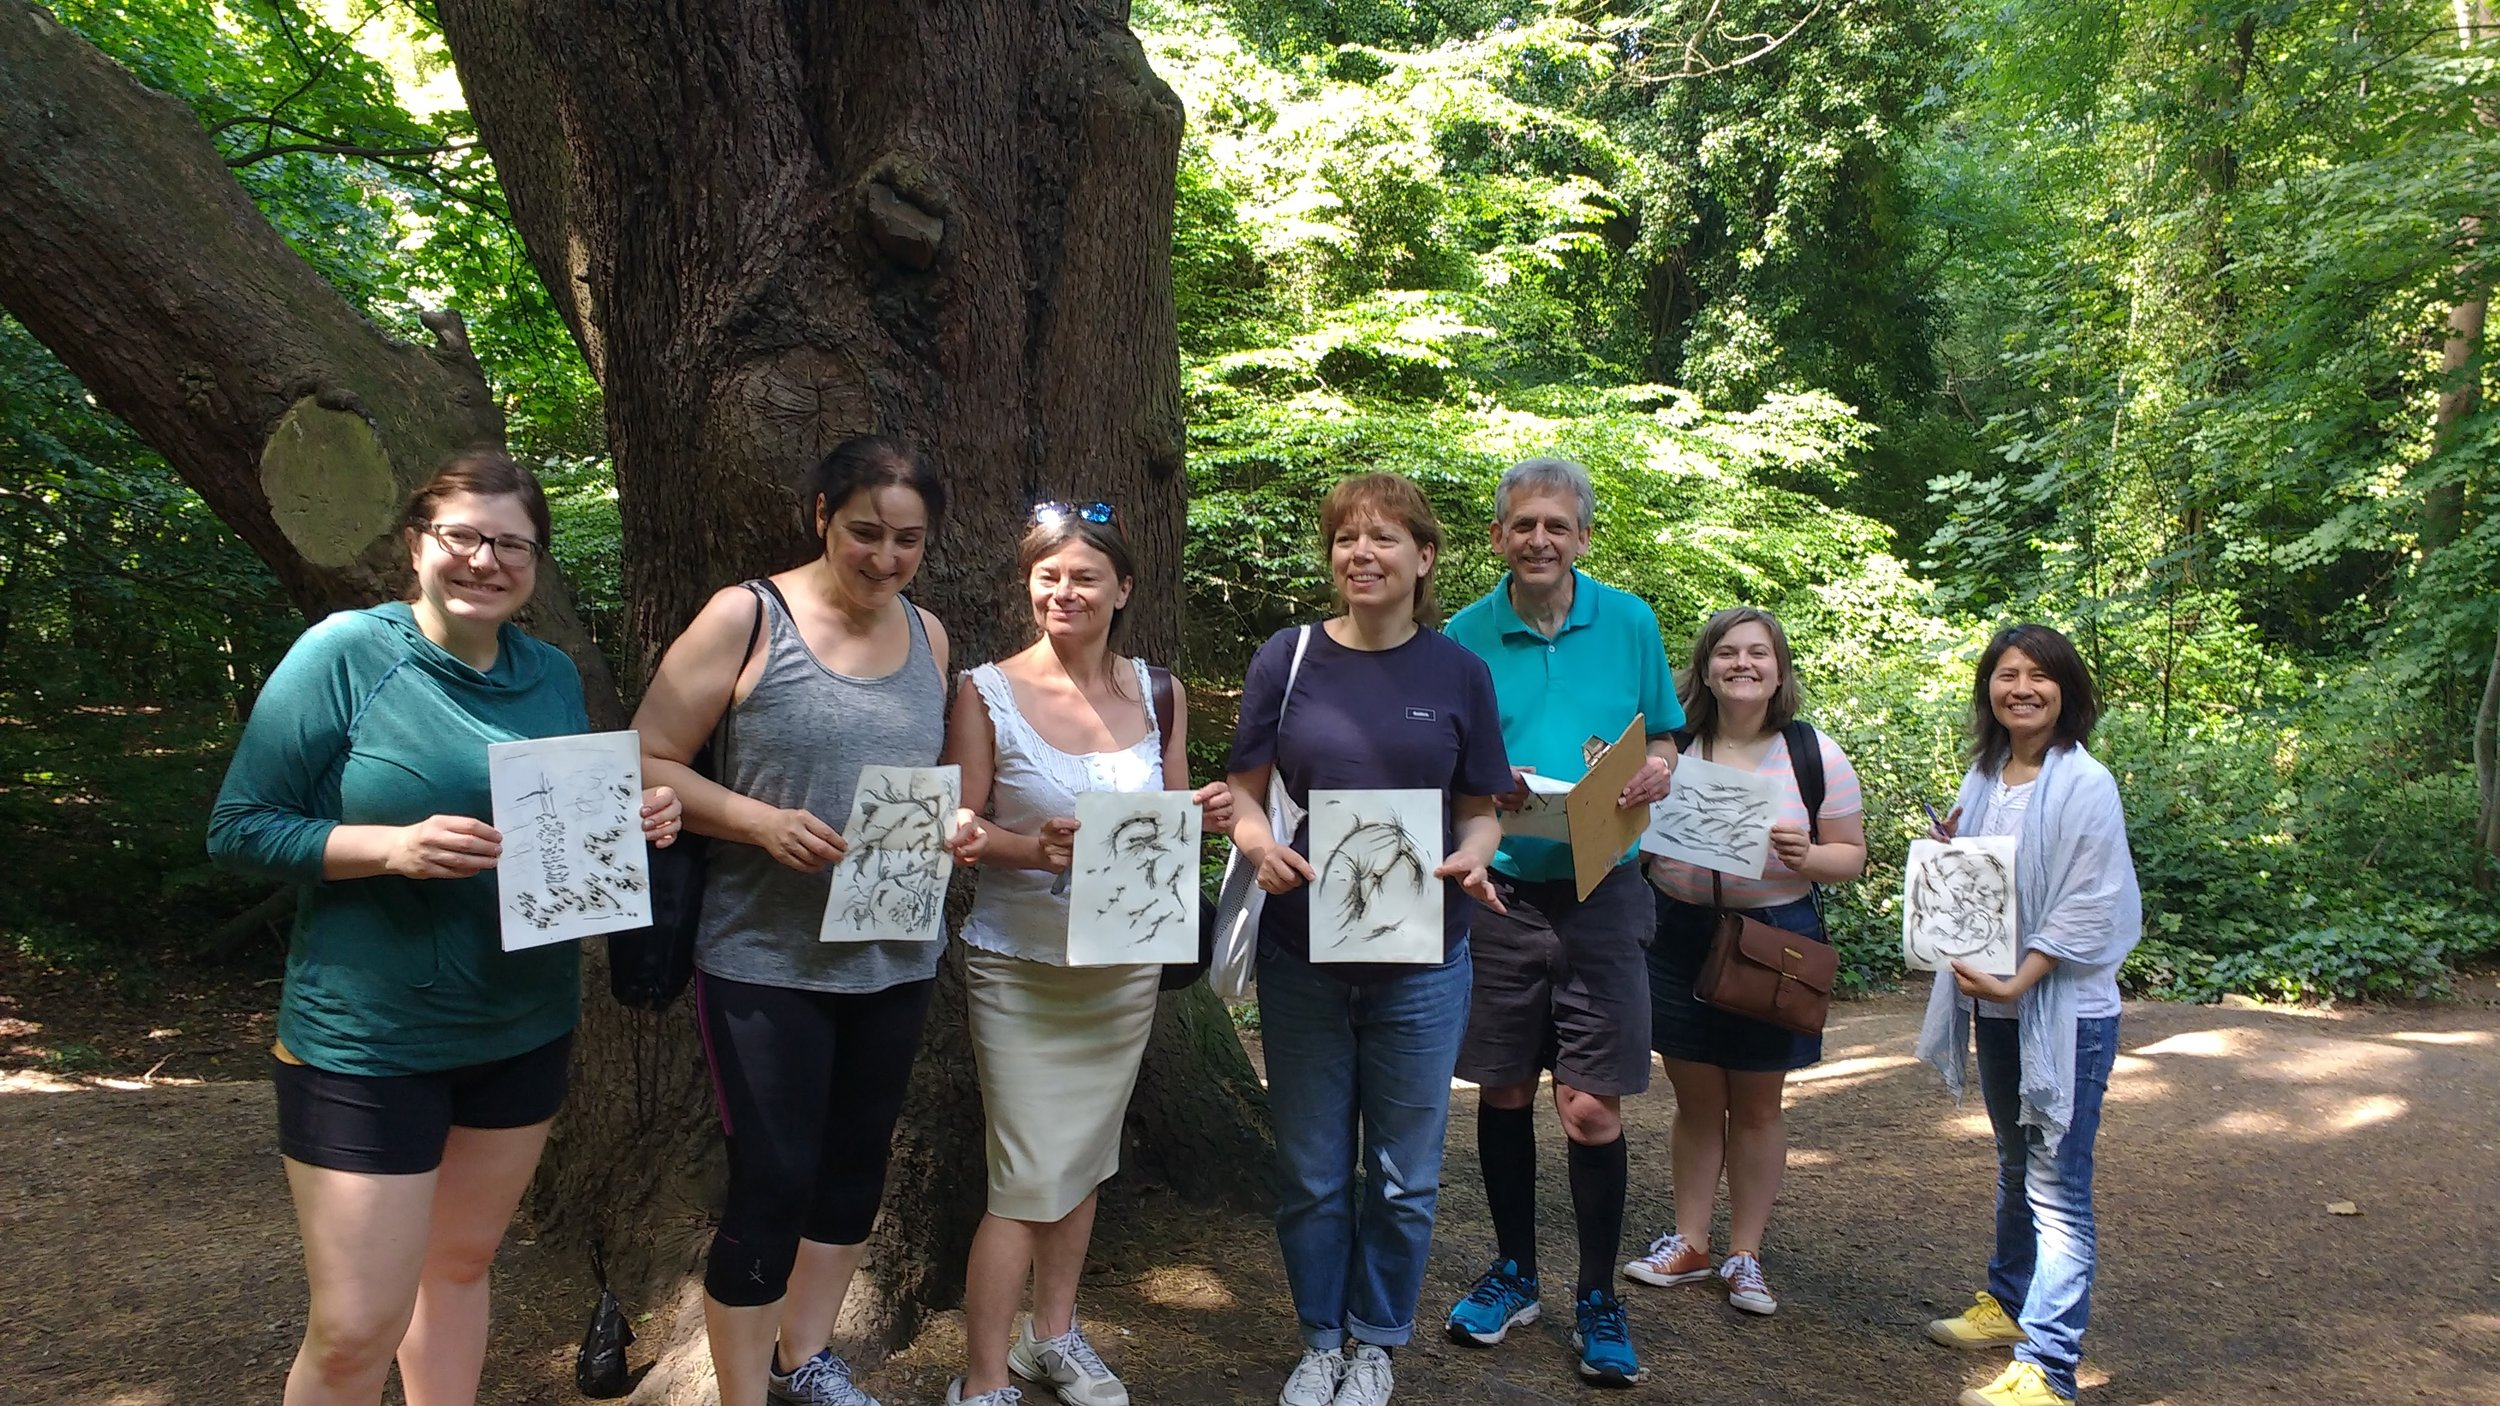 Oak ink impressions and happy faces in Sydenham Hill Wood, after attending a forest bathing session made for the Mayor of London's Tree Week